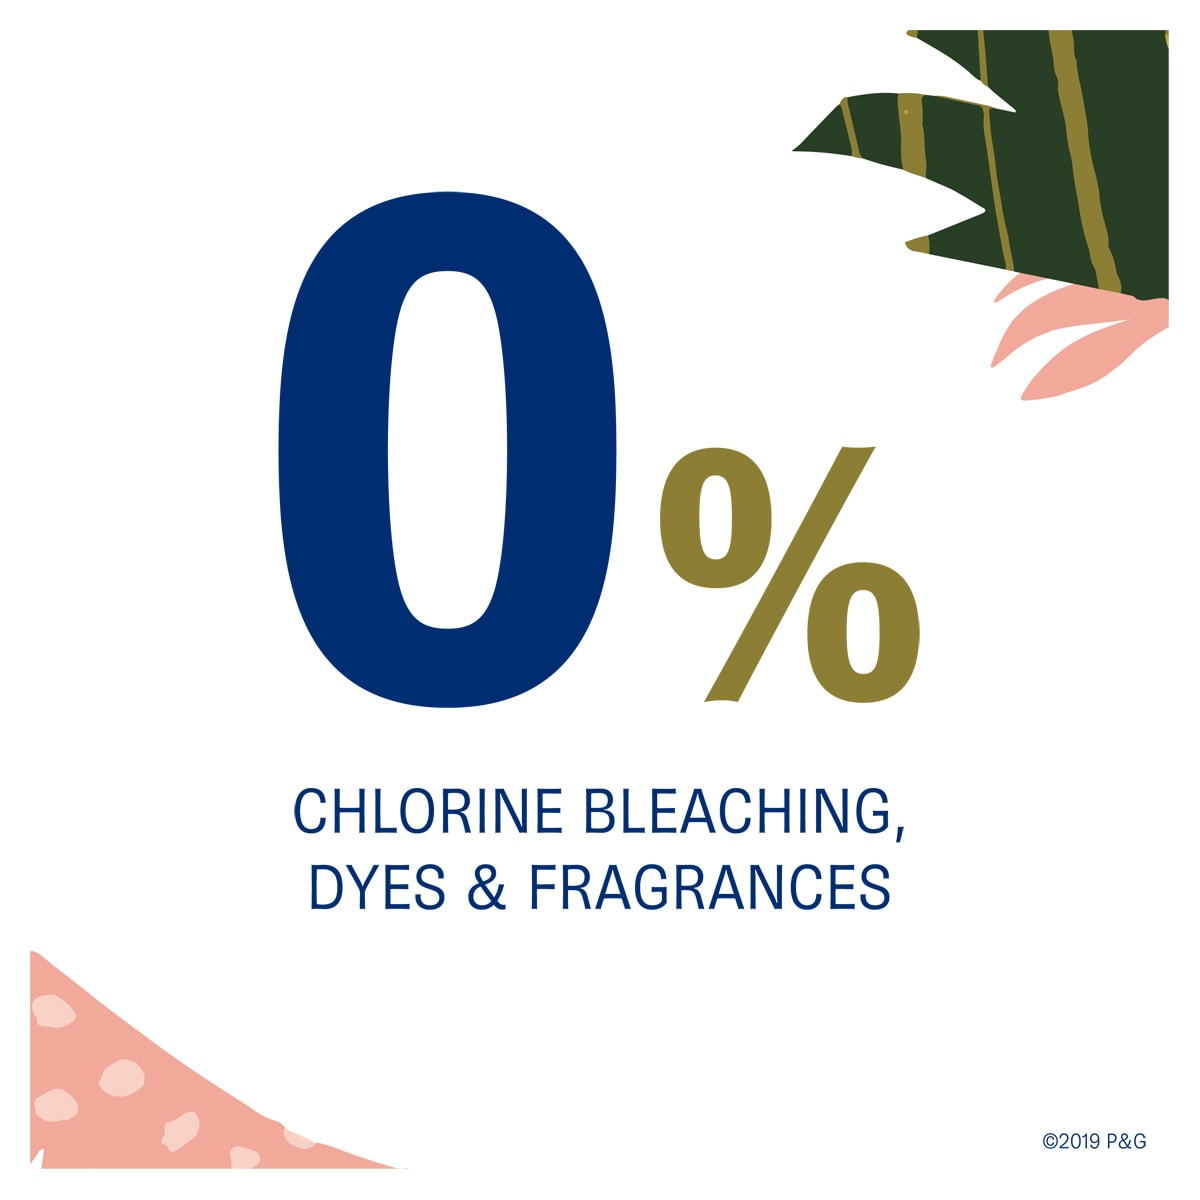 Always Pure 0% Bleaching, Dyes and Fragrances benefit